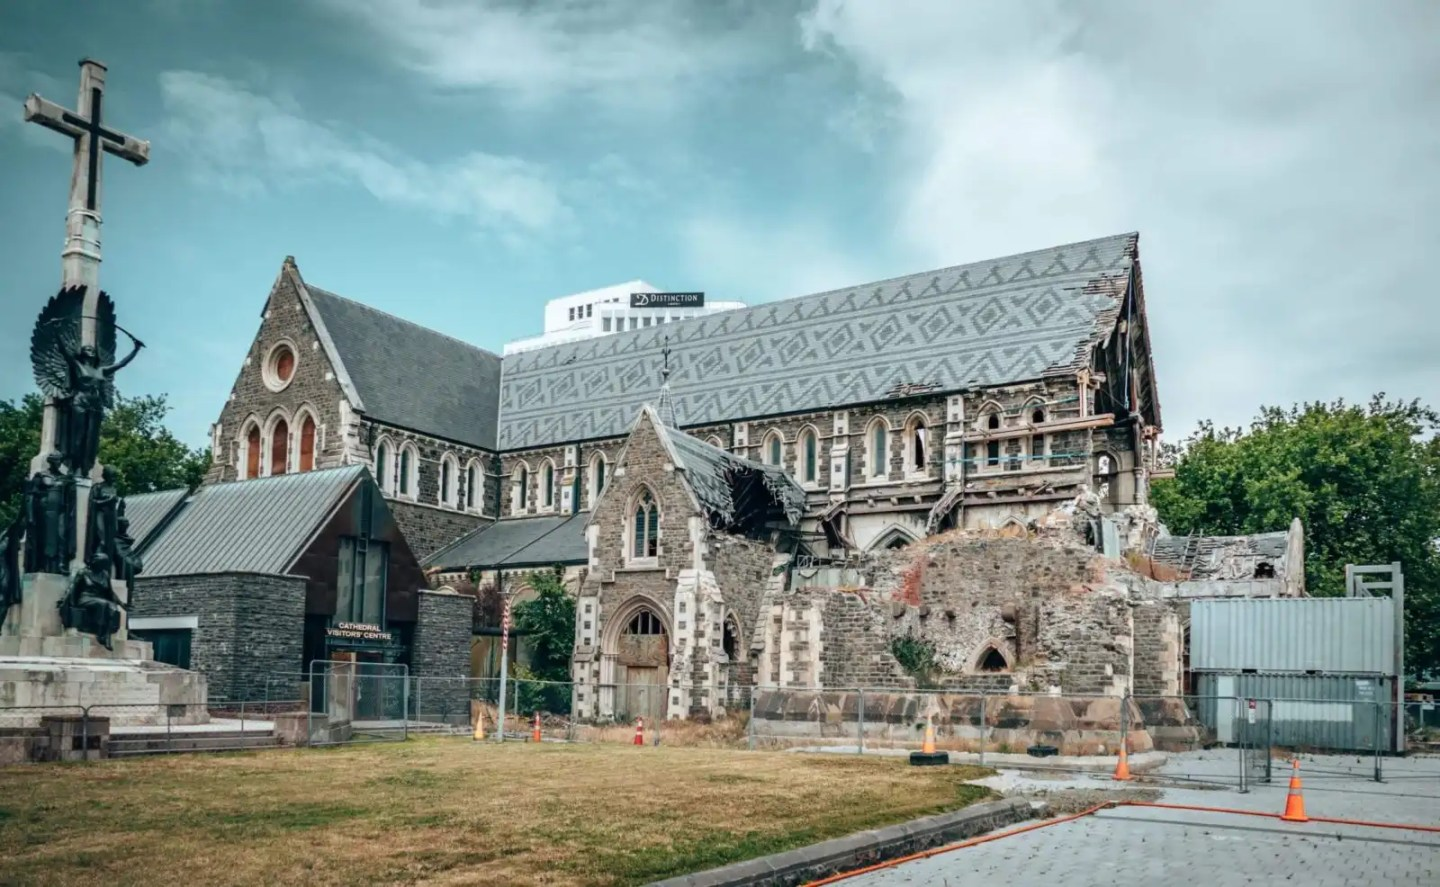 The old Christchurch Cathedral